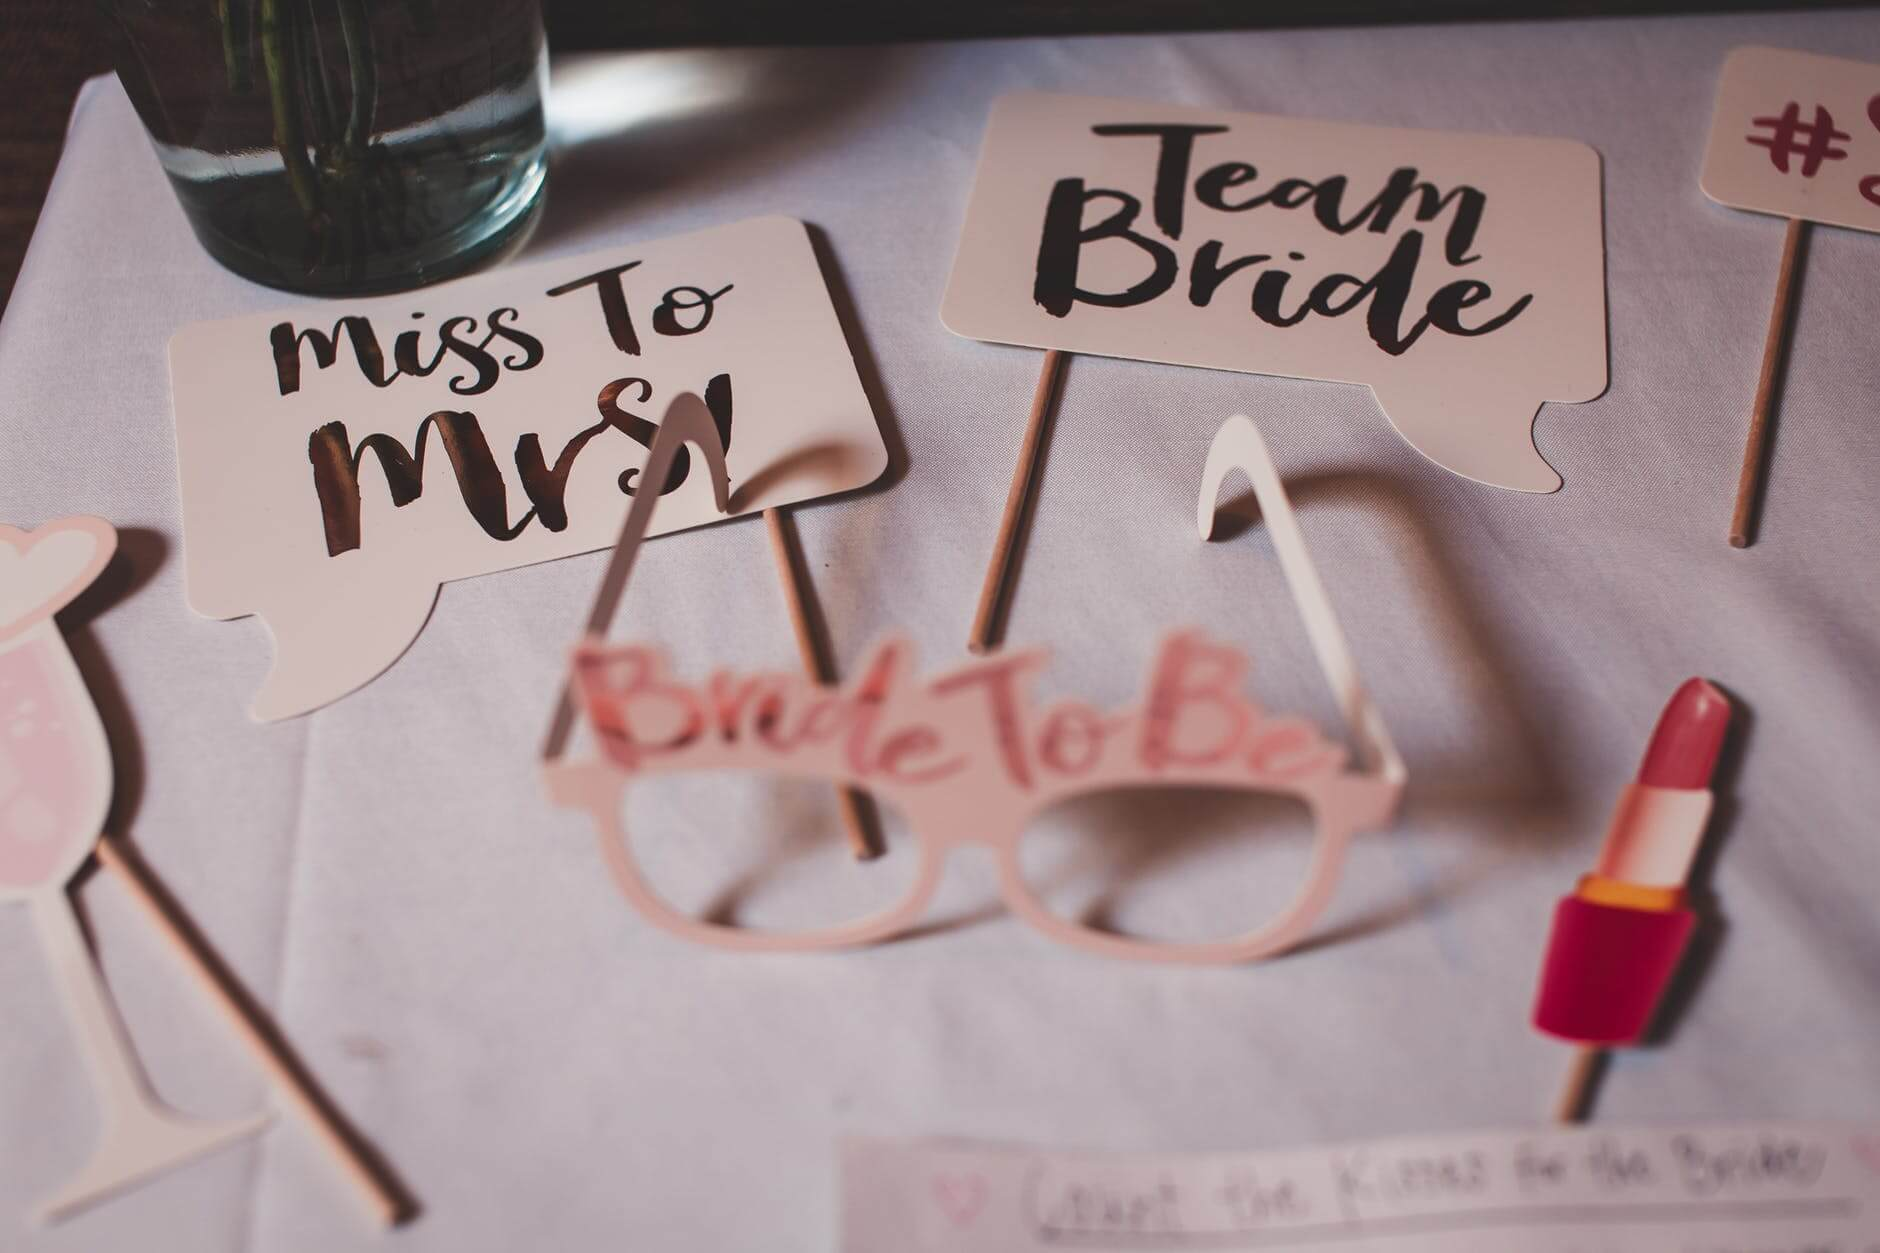 15 Engaging Bridal Shower GamesThat EveryoneWouldLove Playing At Your Bridal Shower